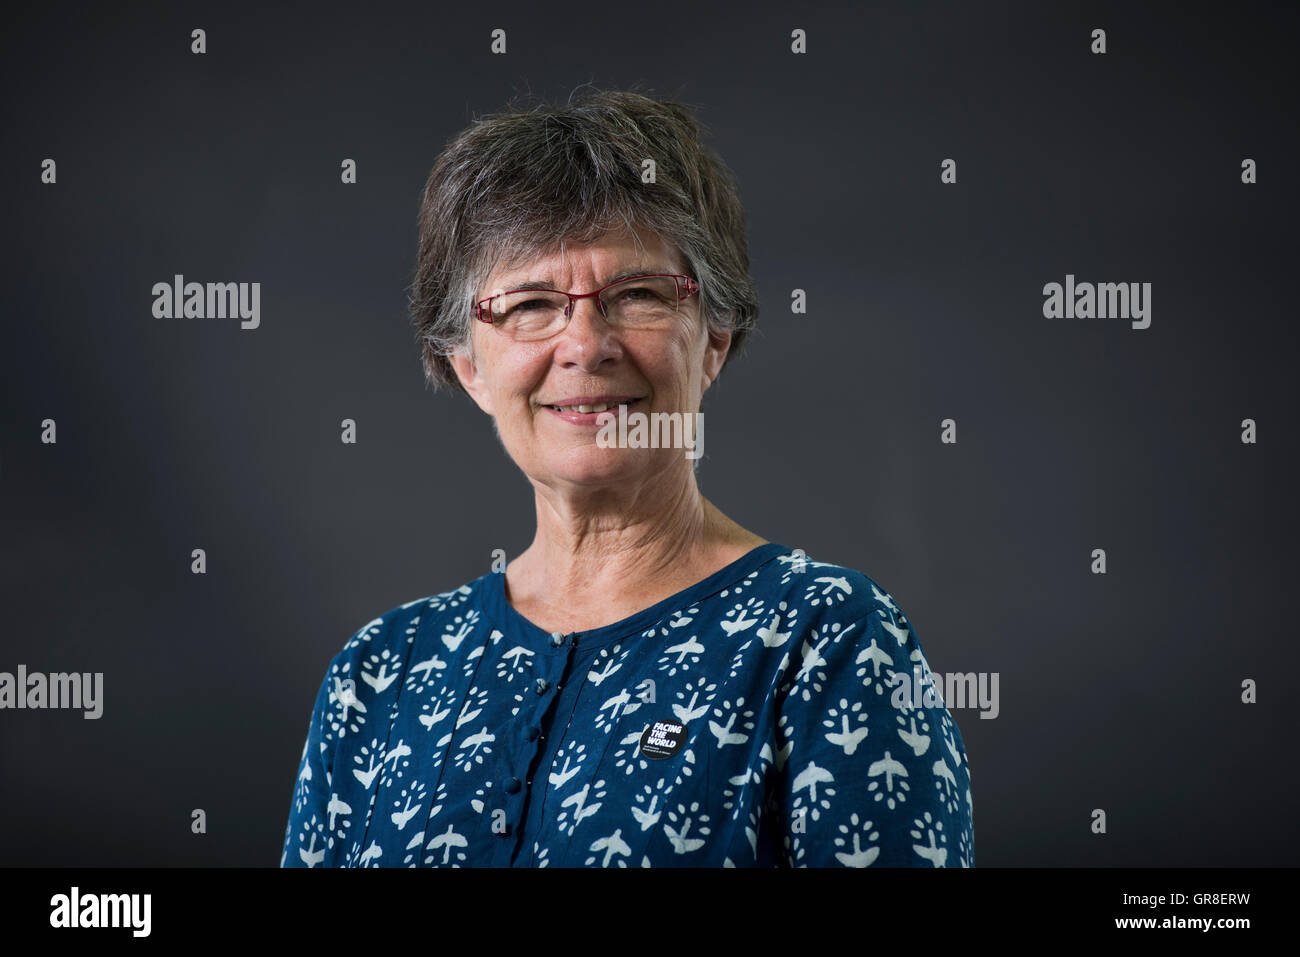 Canadian nature and science writer Candace Savage. - Stock Image